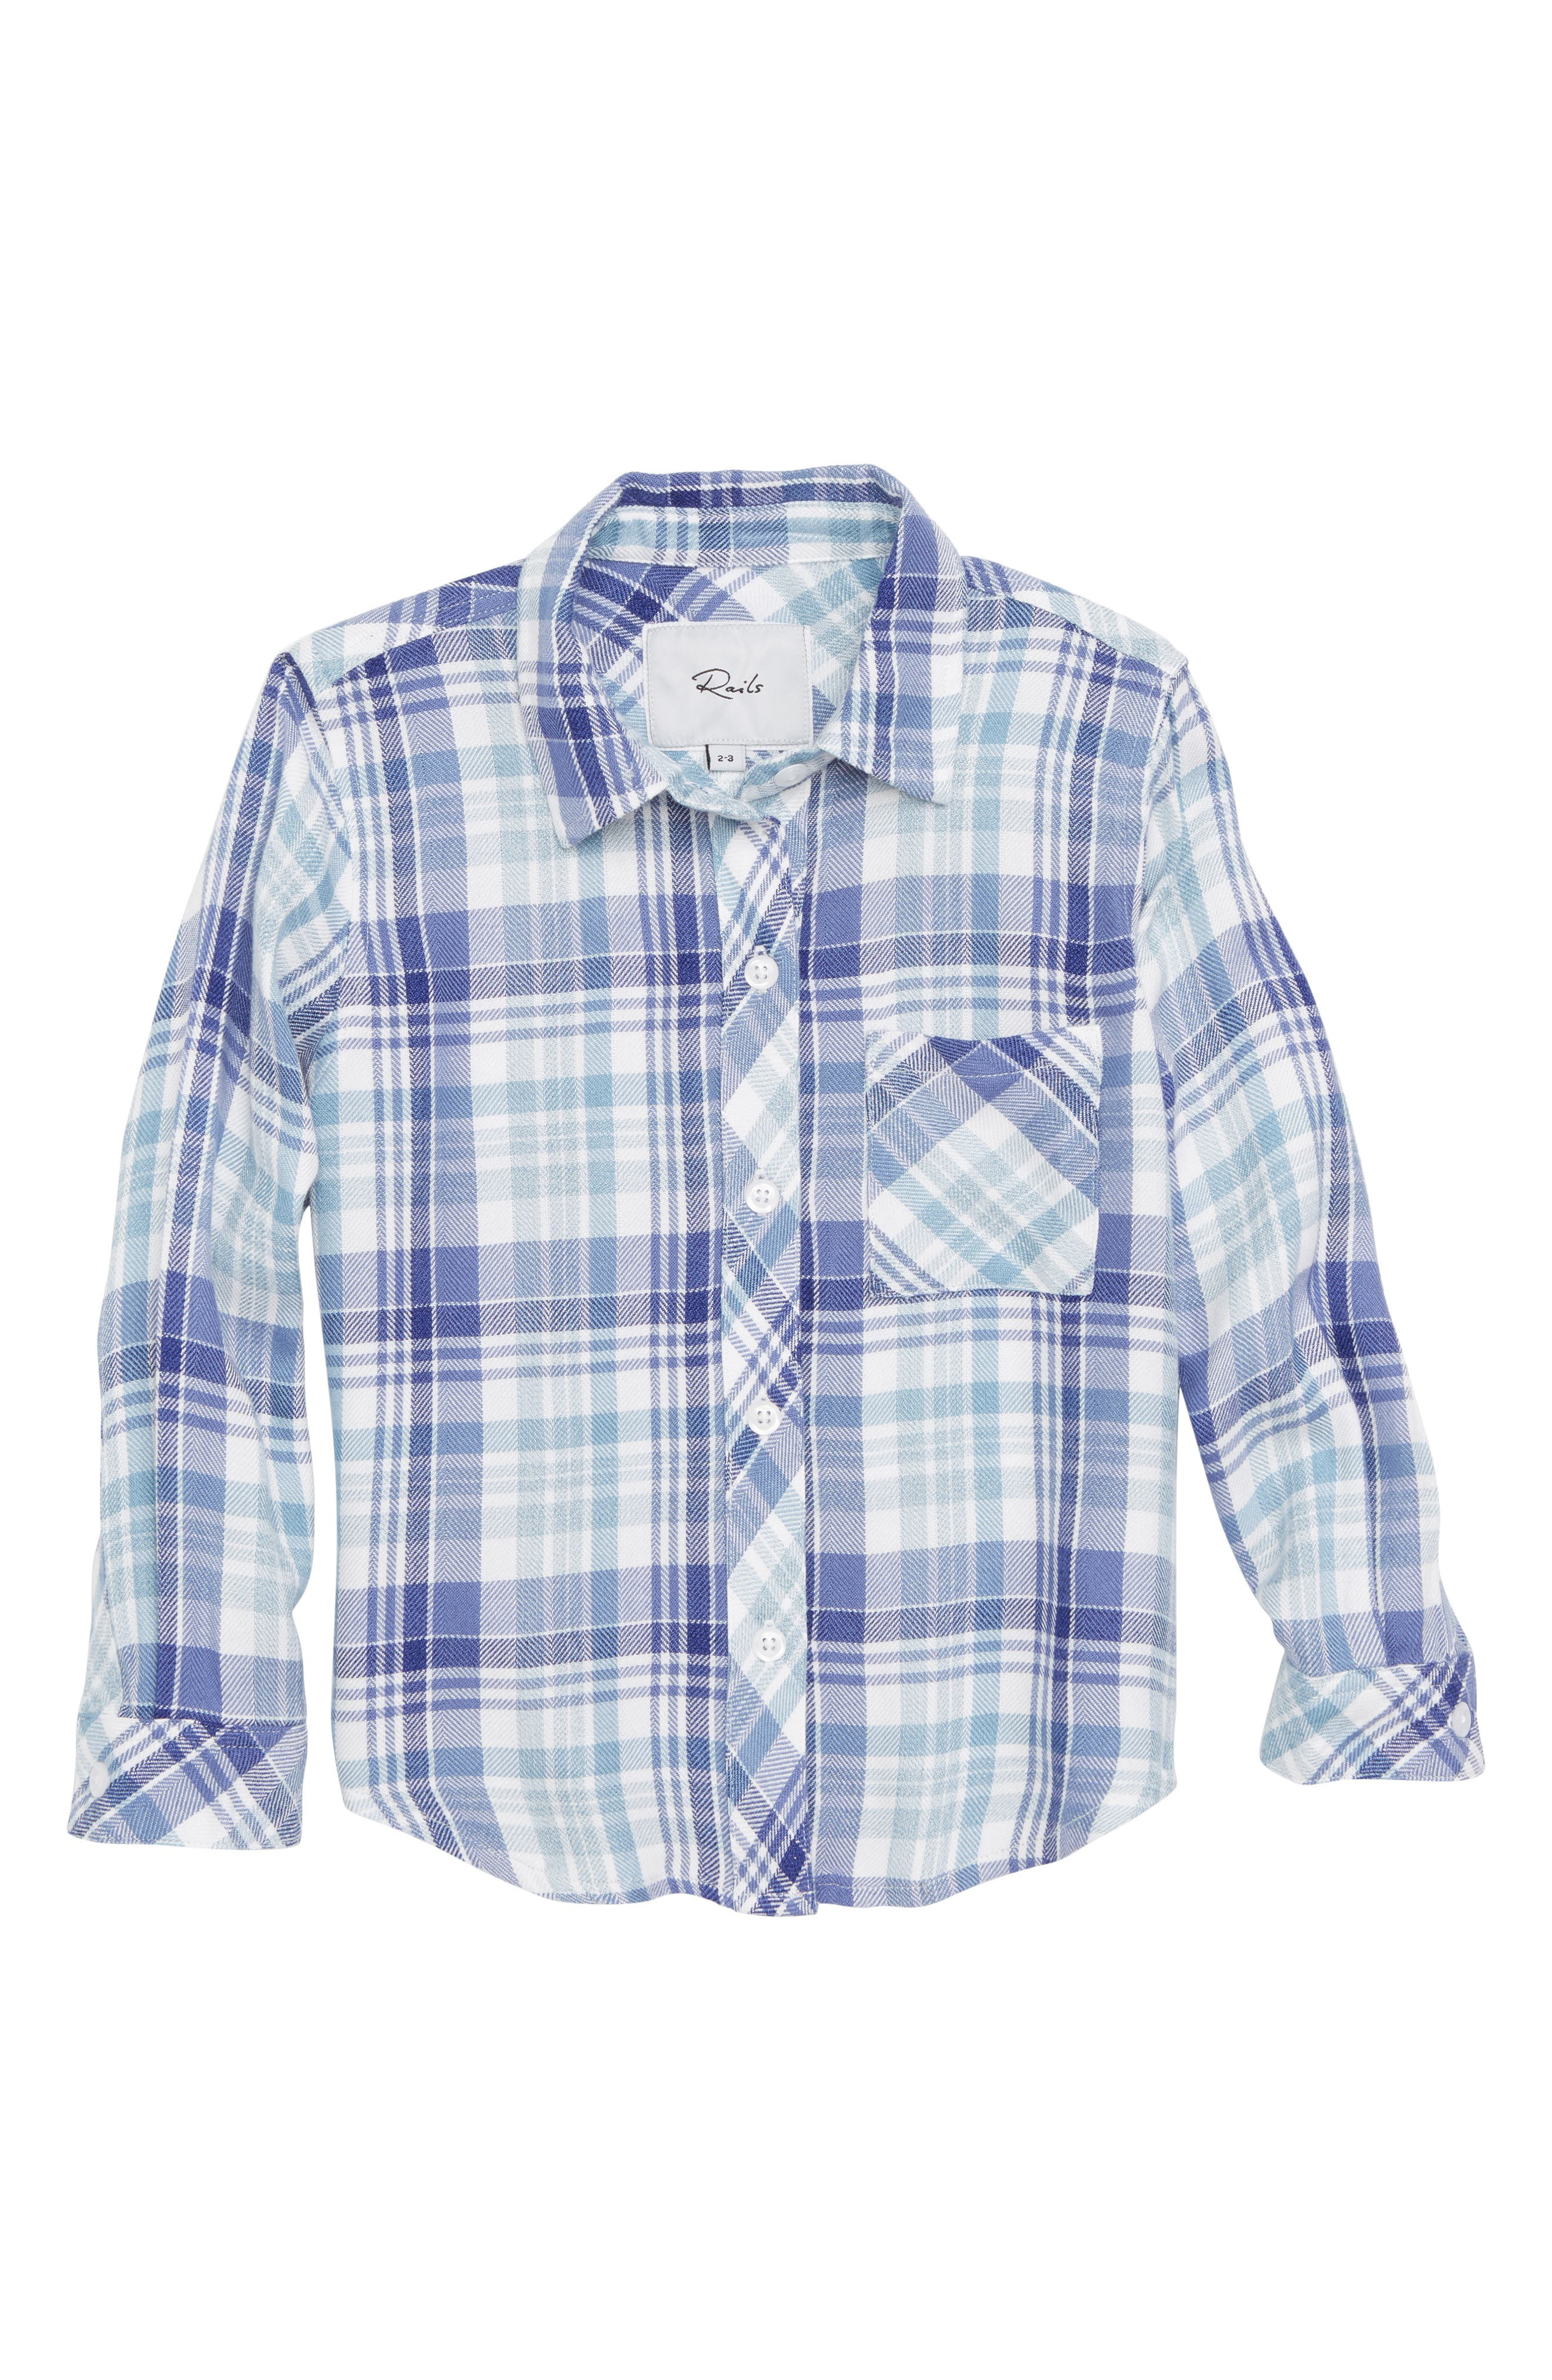 Hudson Plaid Shirt,                         Main,                         color, Laguna Coast